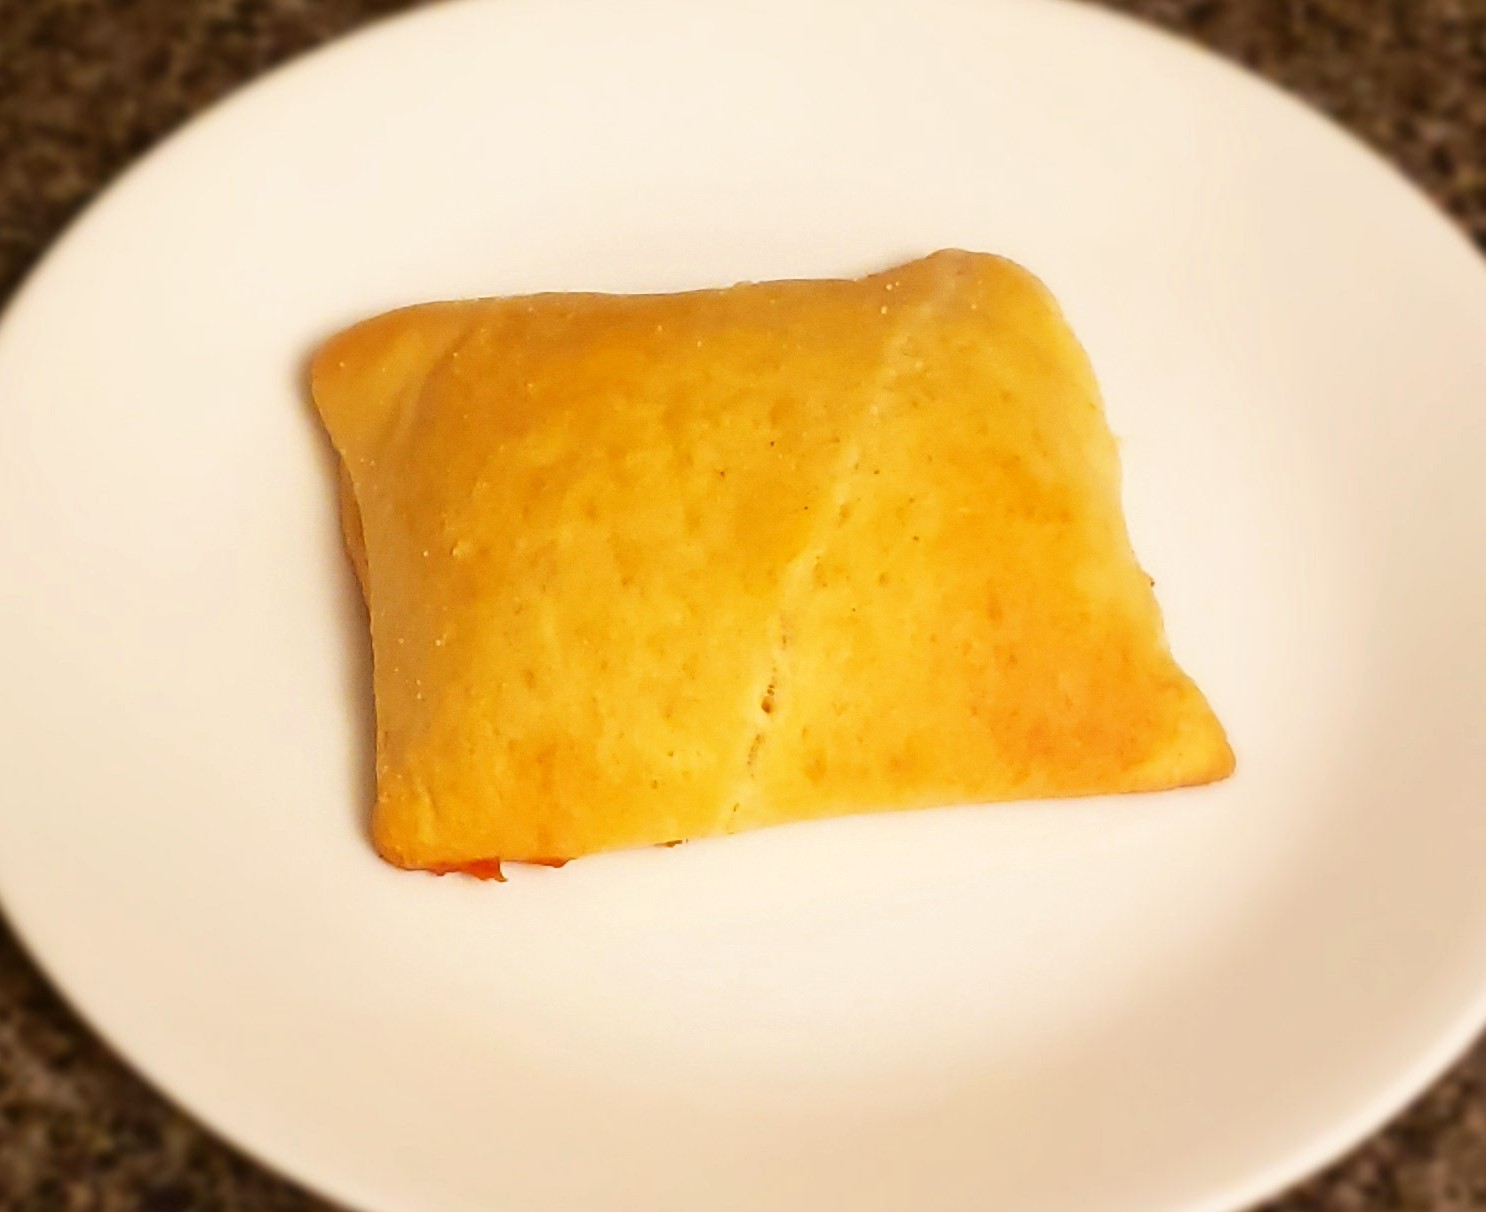 A square piece of golden brown baked pastry dough on a while plate